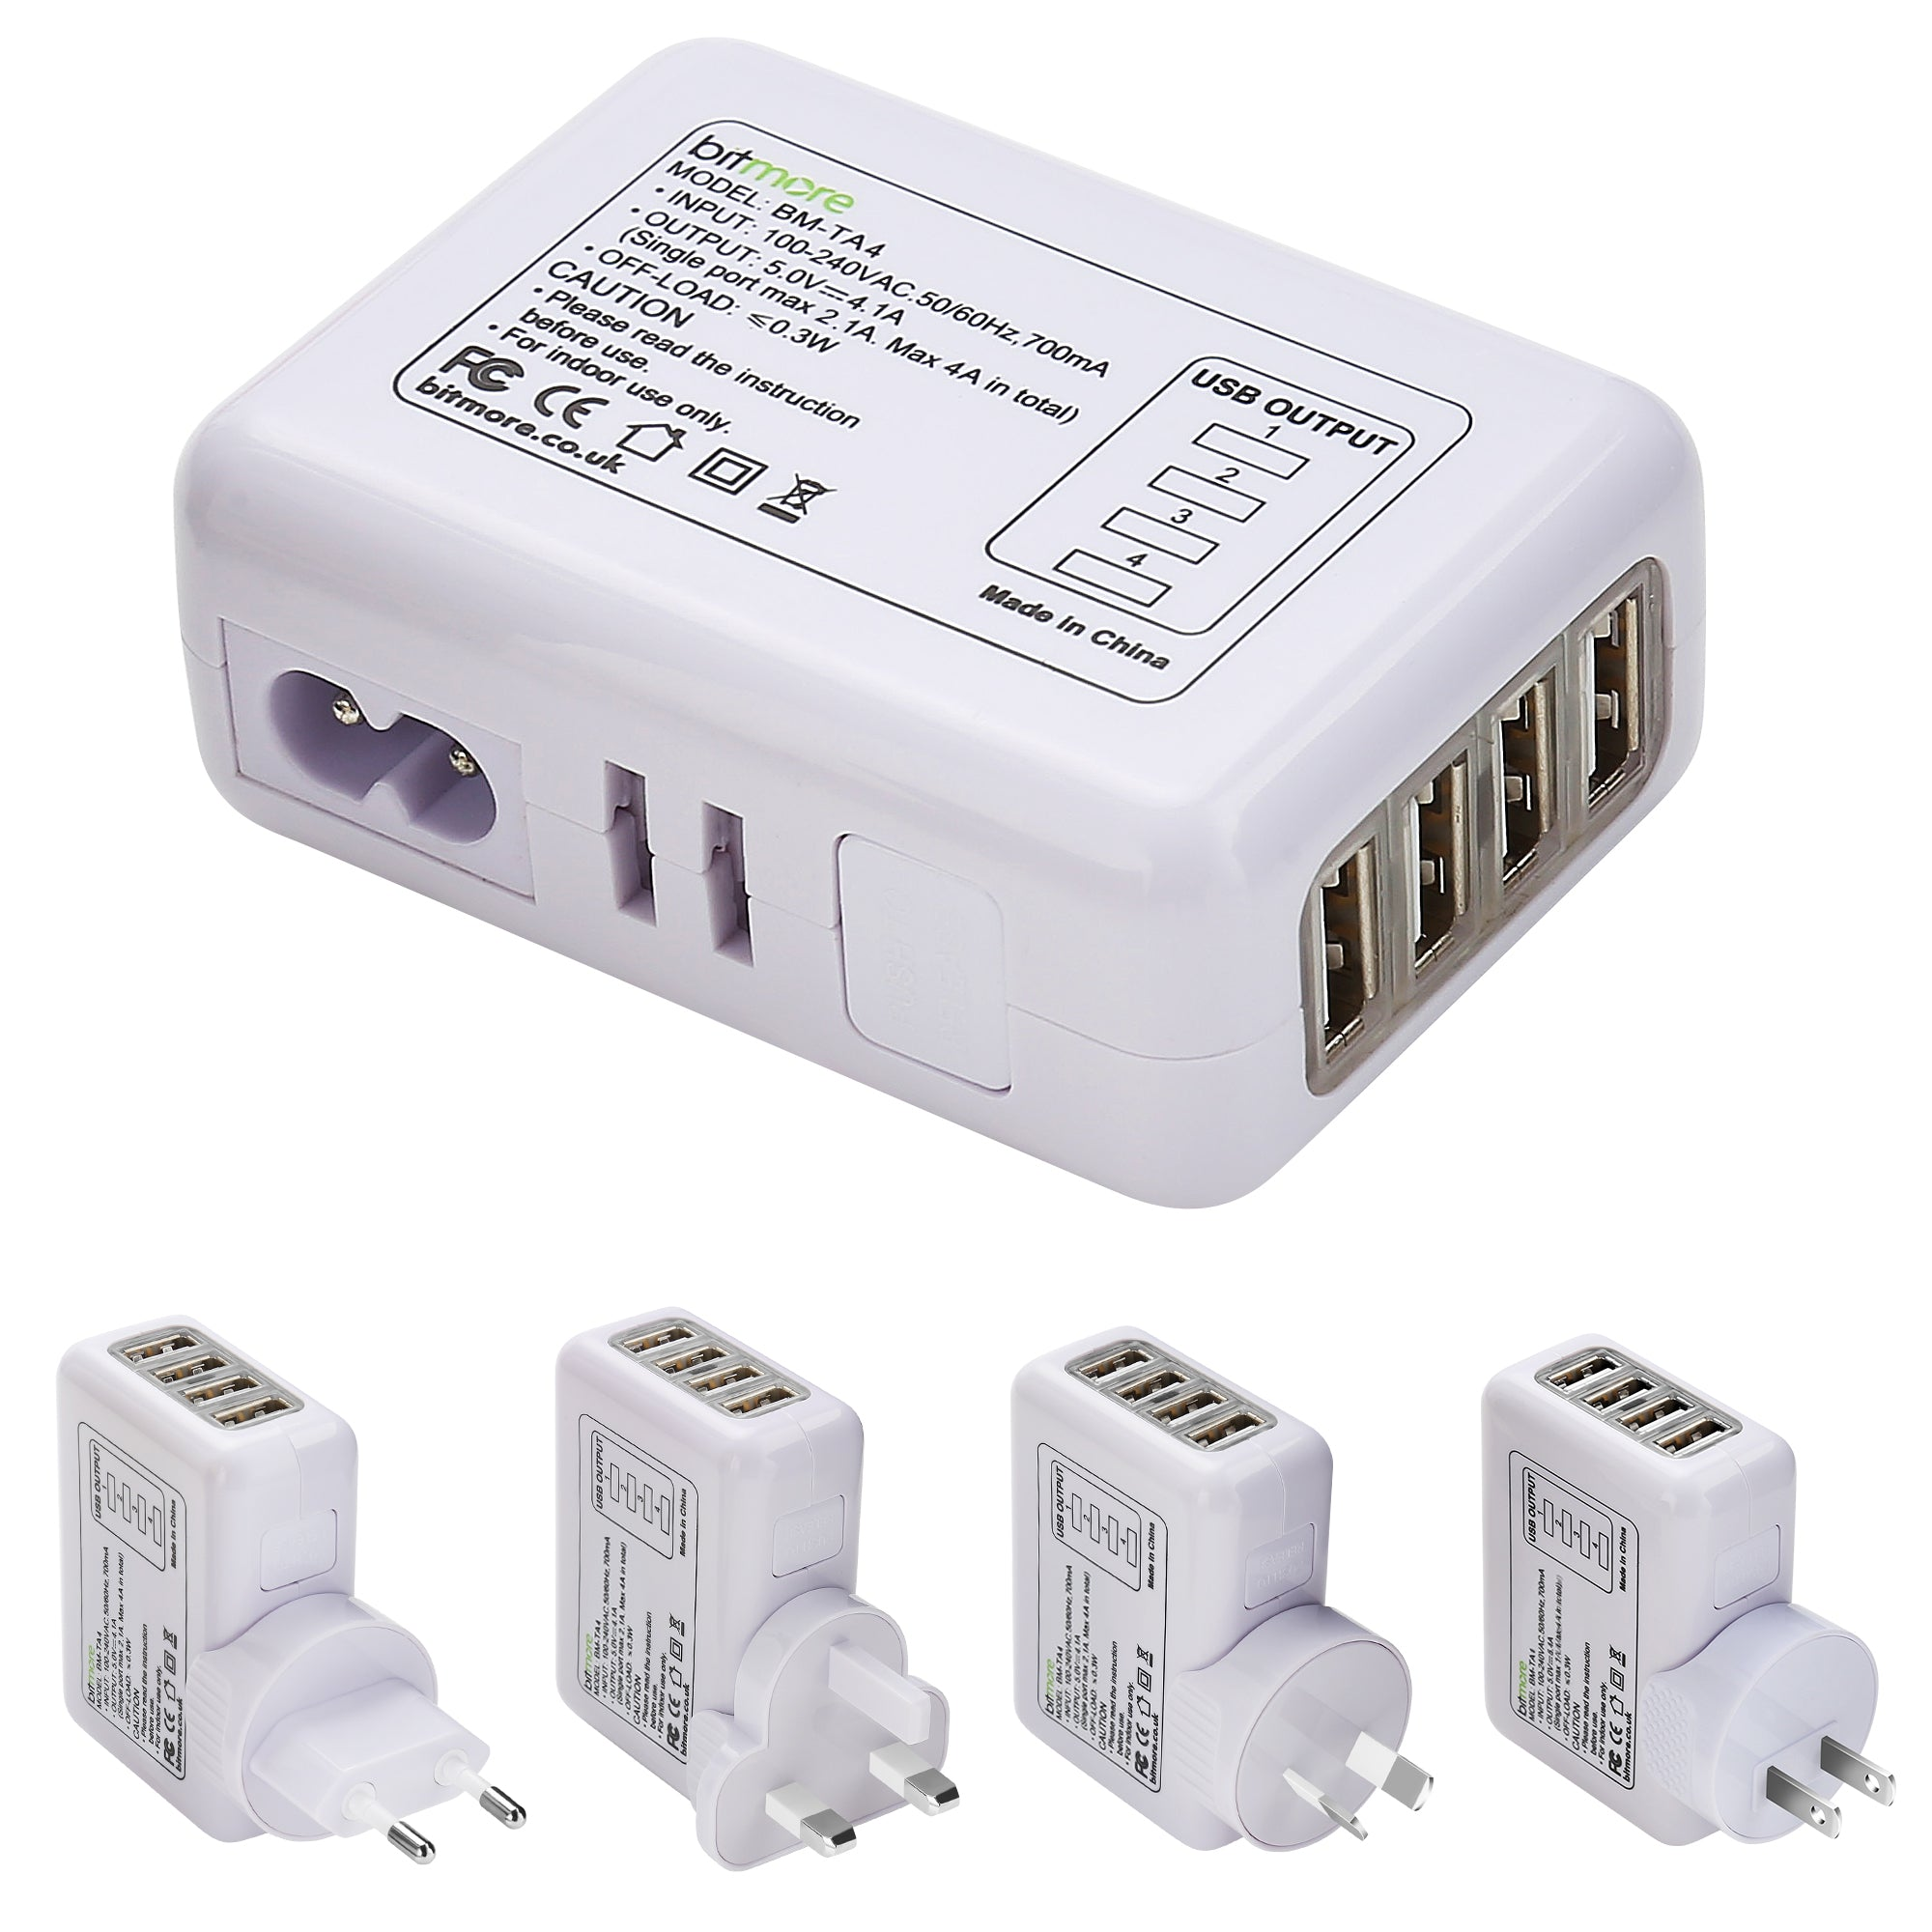 Bitmore® Travel Charger - 4 port USB Hub Adapter - bitmore.co.uk